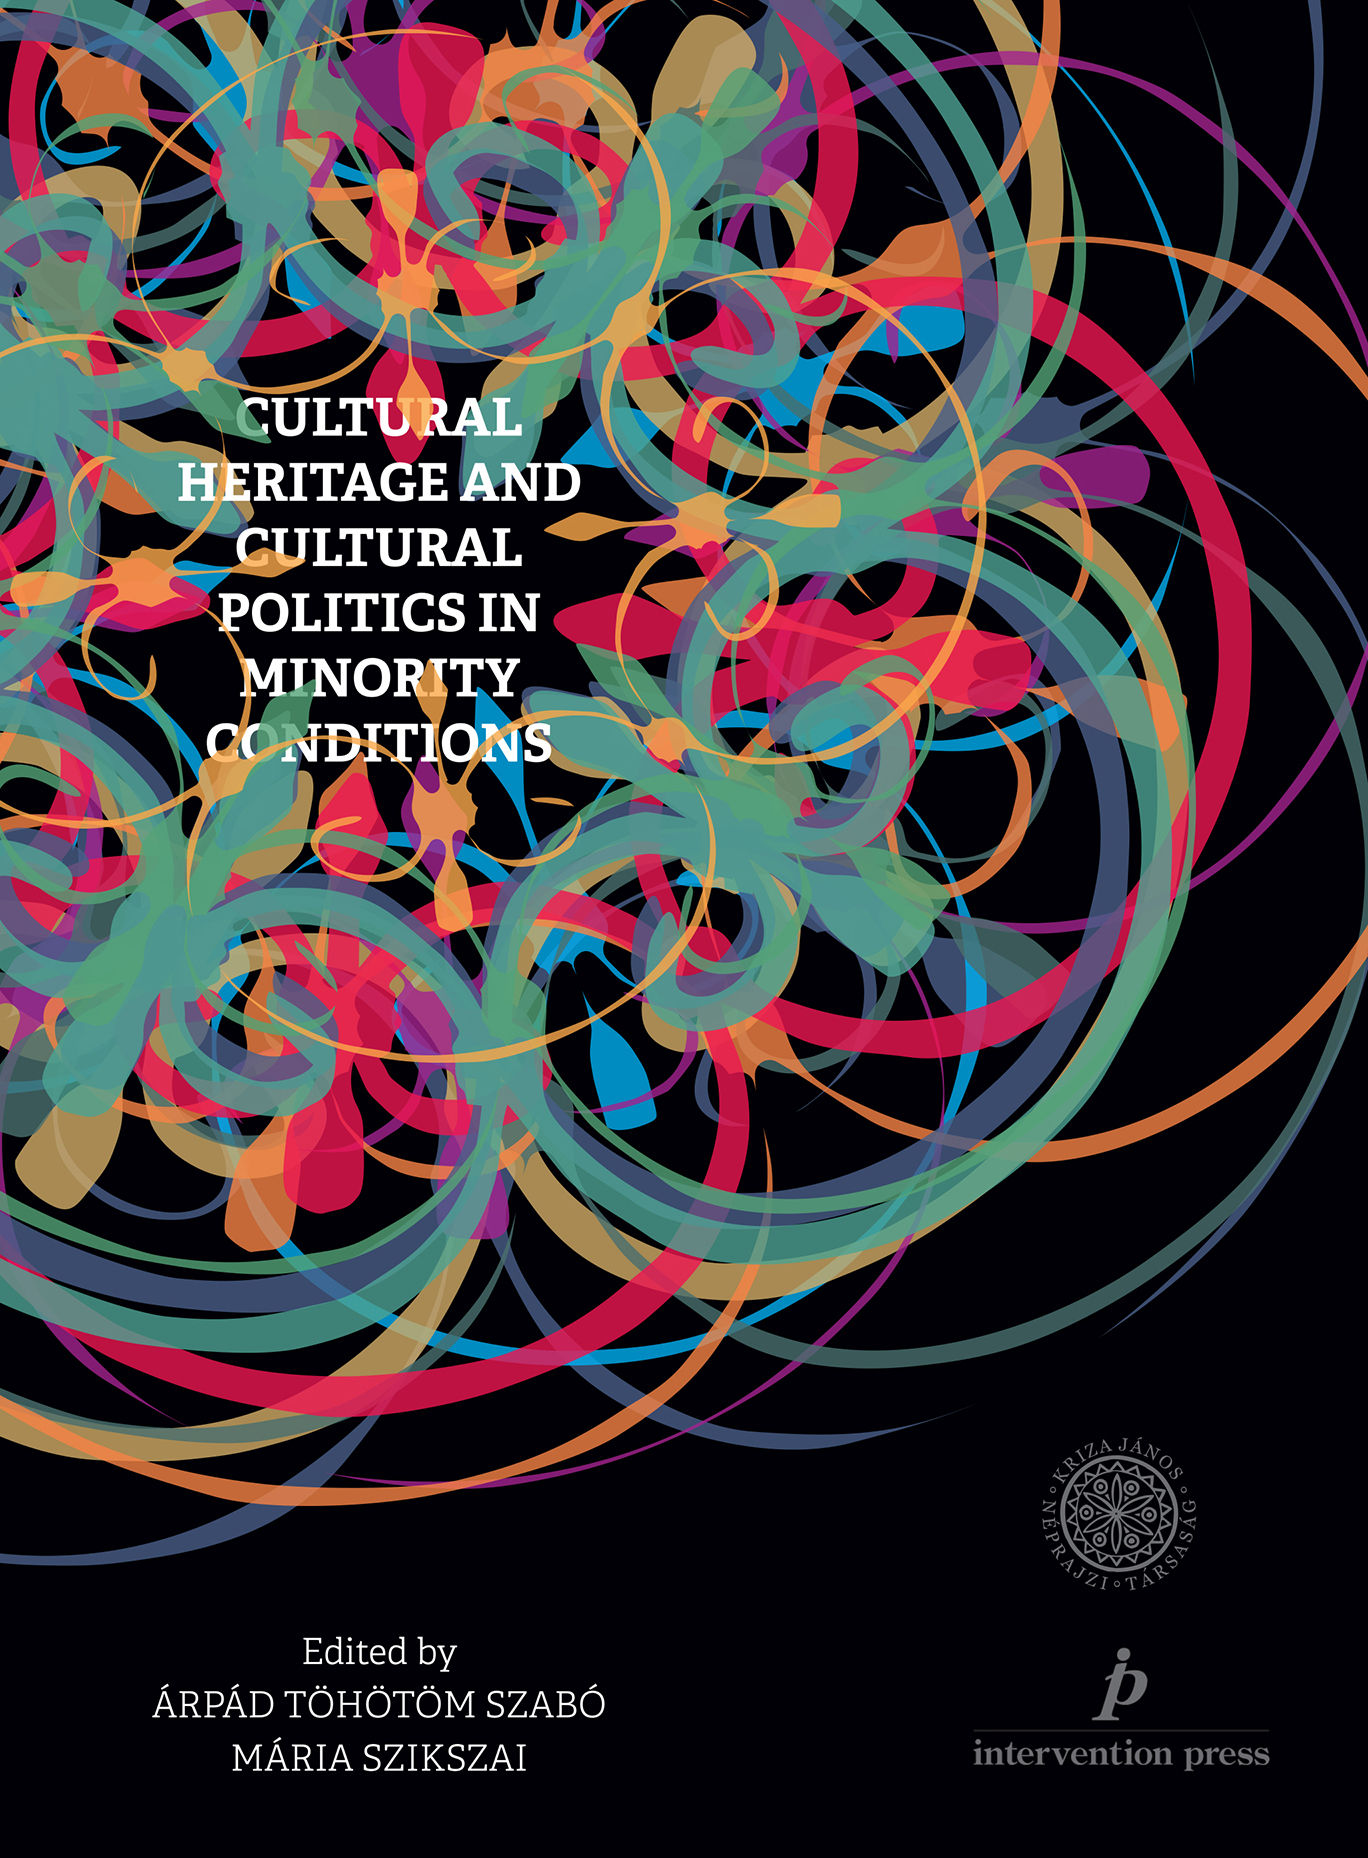 Cultural Heritage and Cultural Politics in Minority Conditions